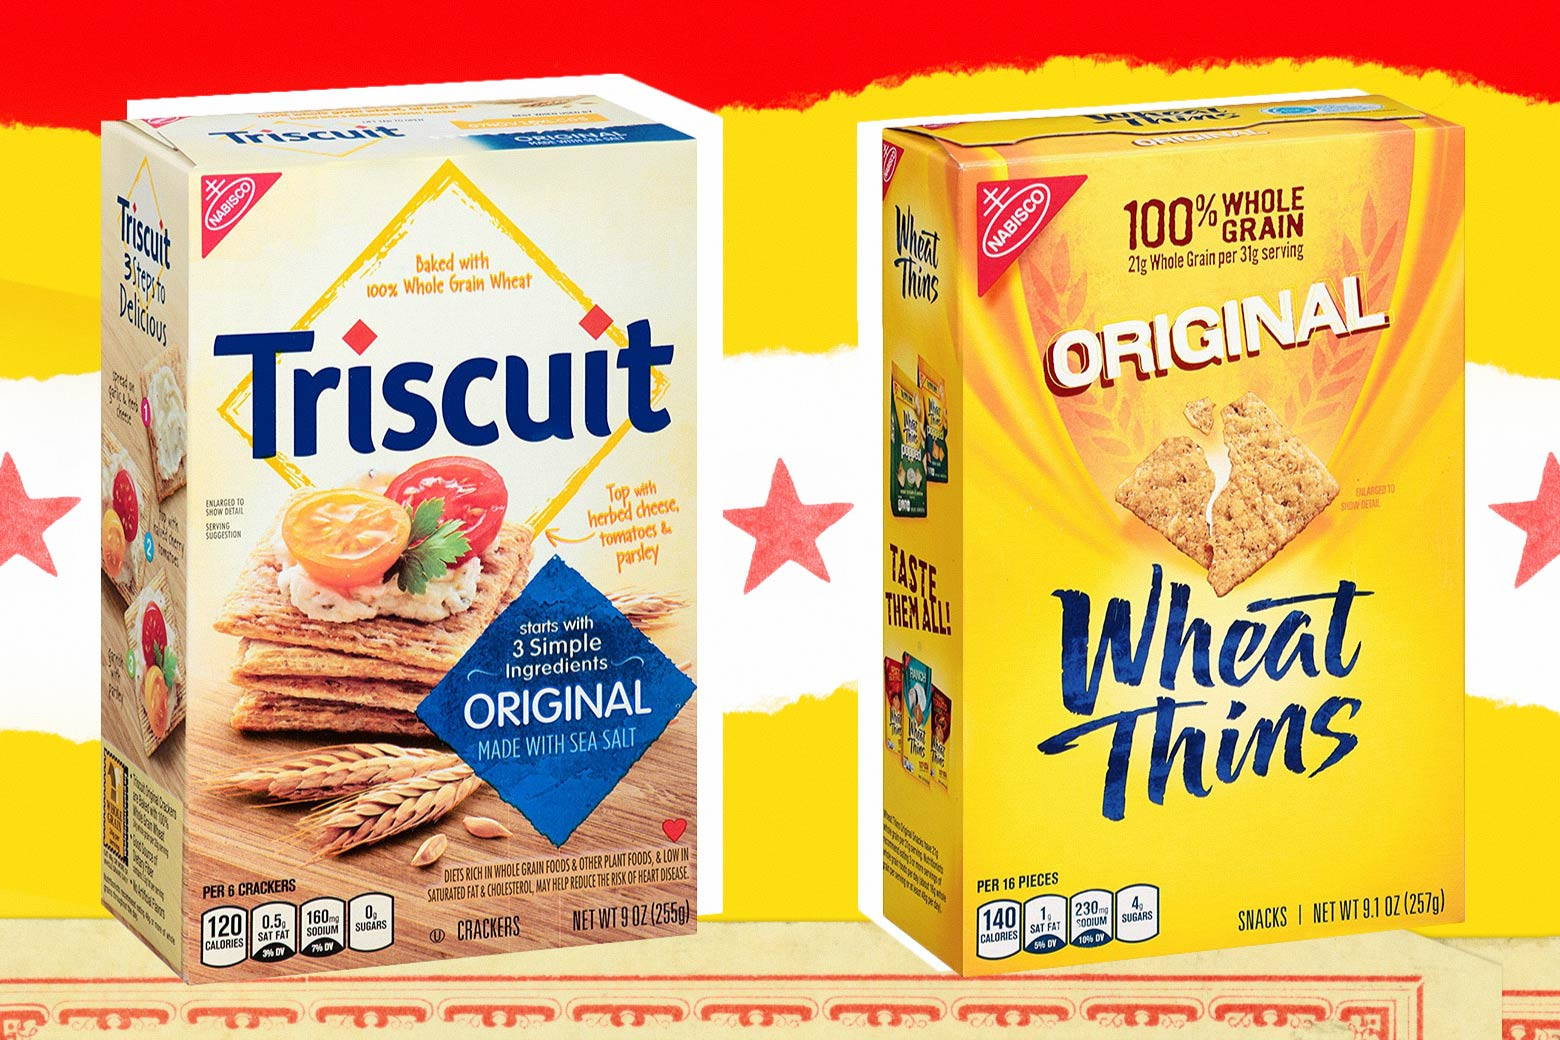 Photo illustration: a box of Triscuits and a box of Wheat Thins. Photo illustration by Slate.